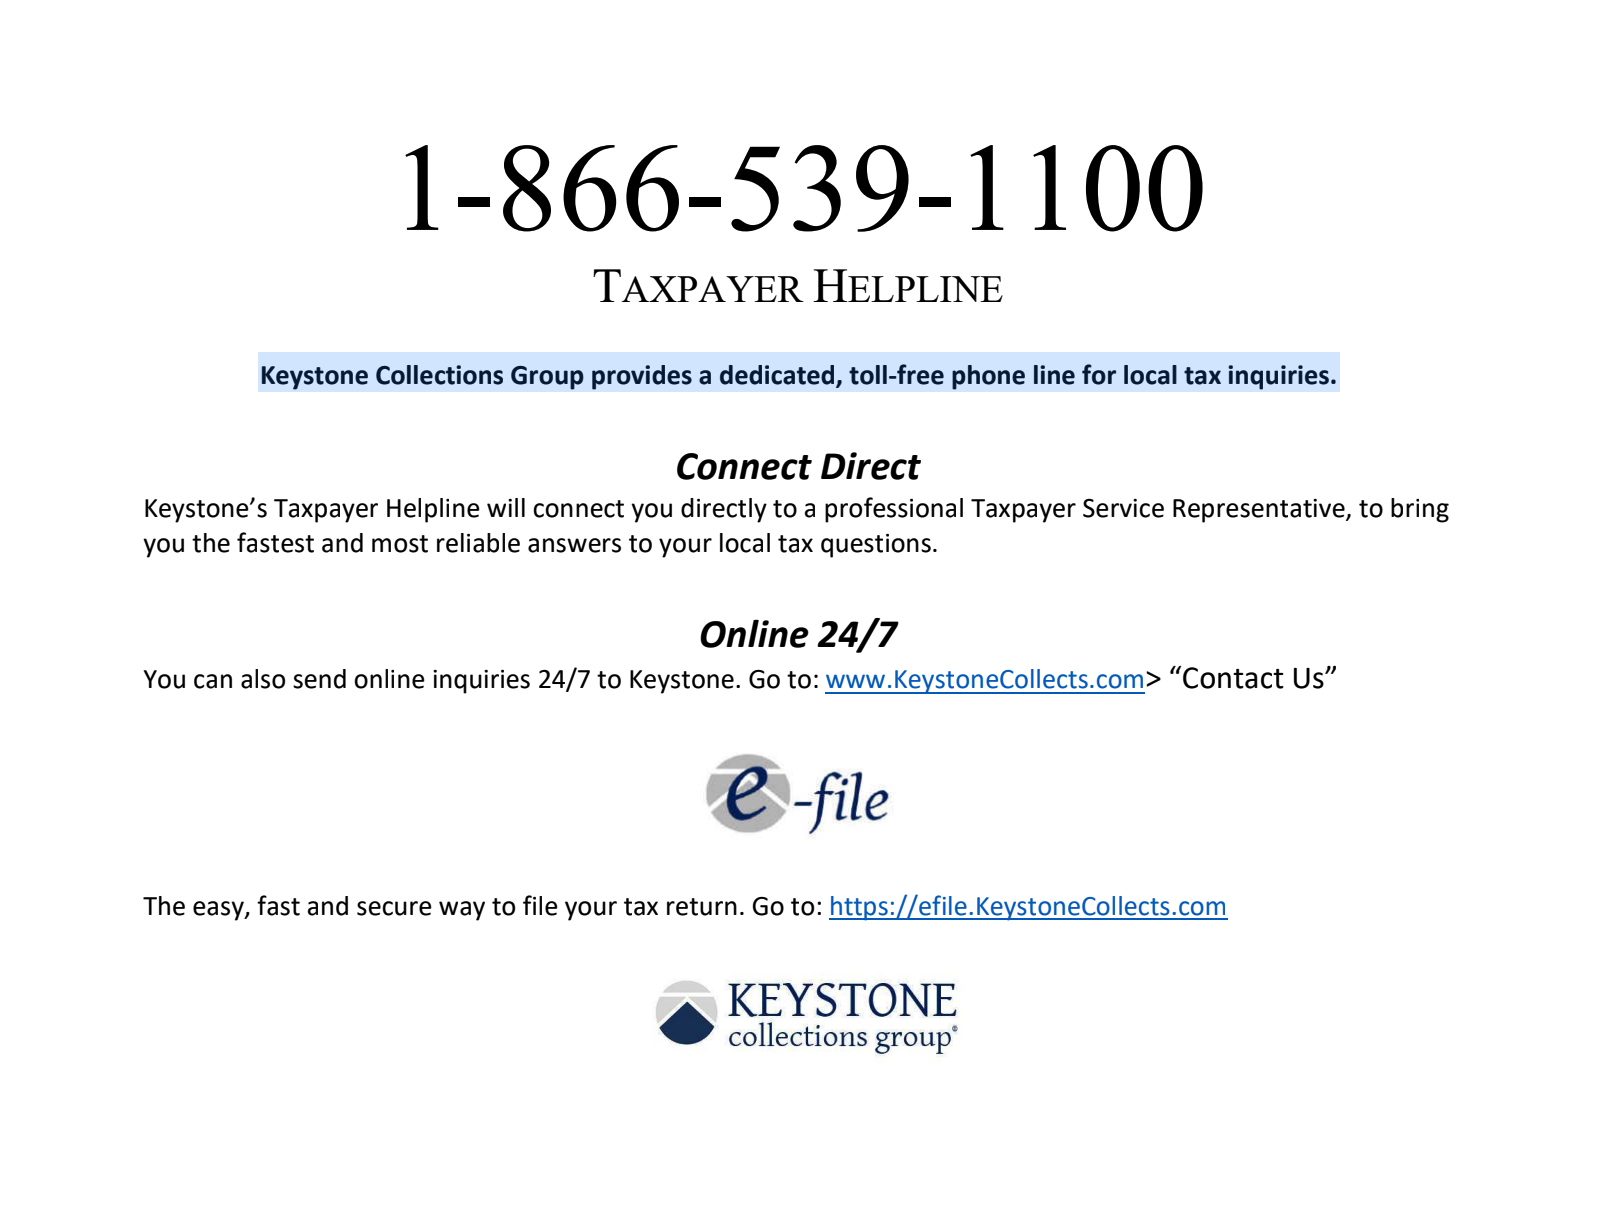 Keystone Collections Group help line information